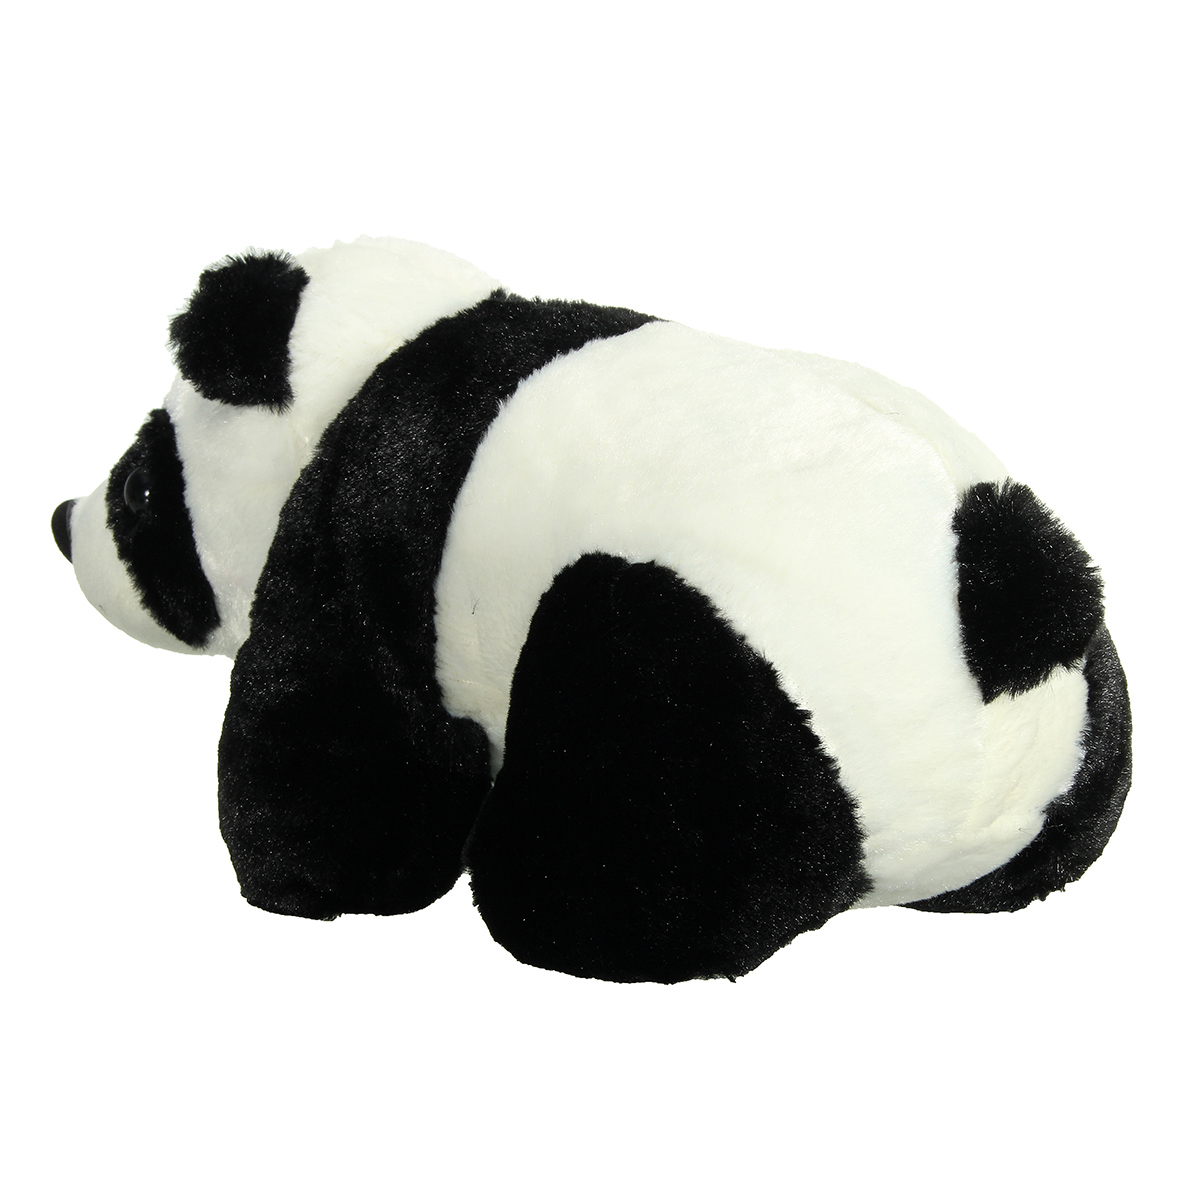 30cm 12'' Soft Plush Stuffed Panda PP Cotton Climbing Chinese Panda Doll Toy Gift - Photo: 4